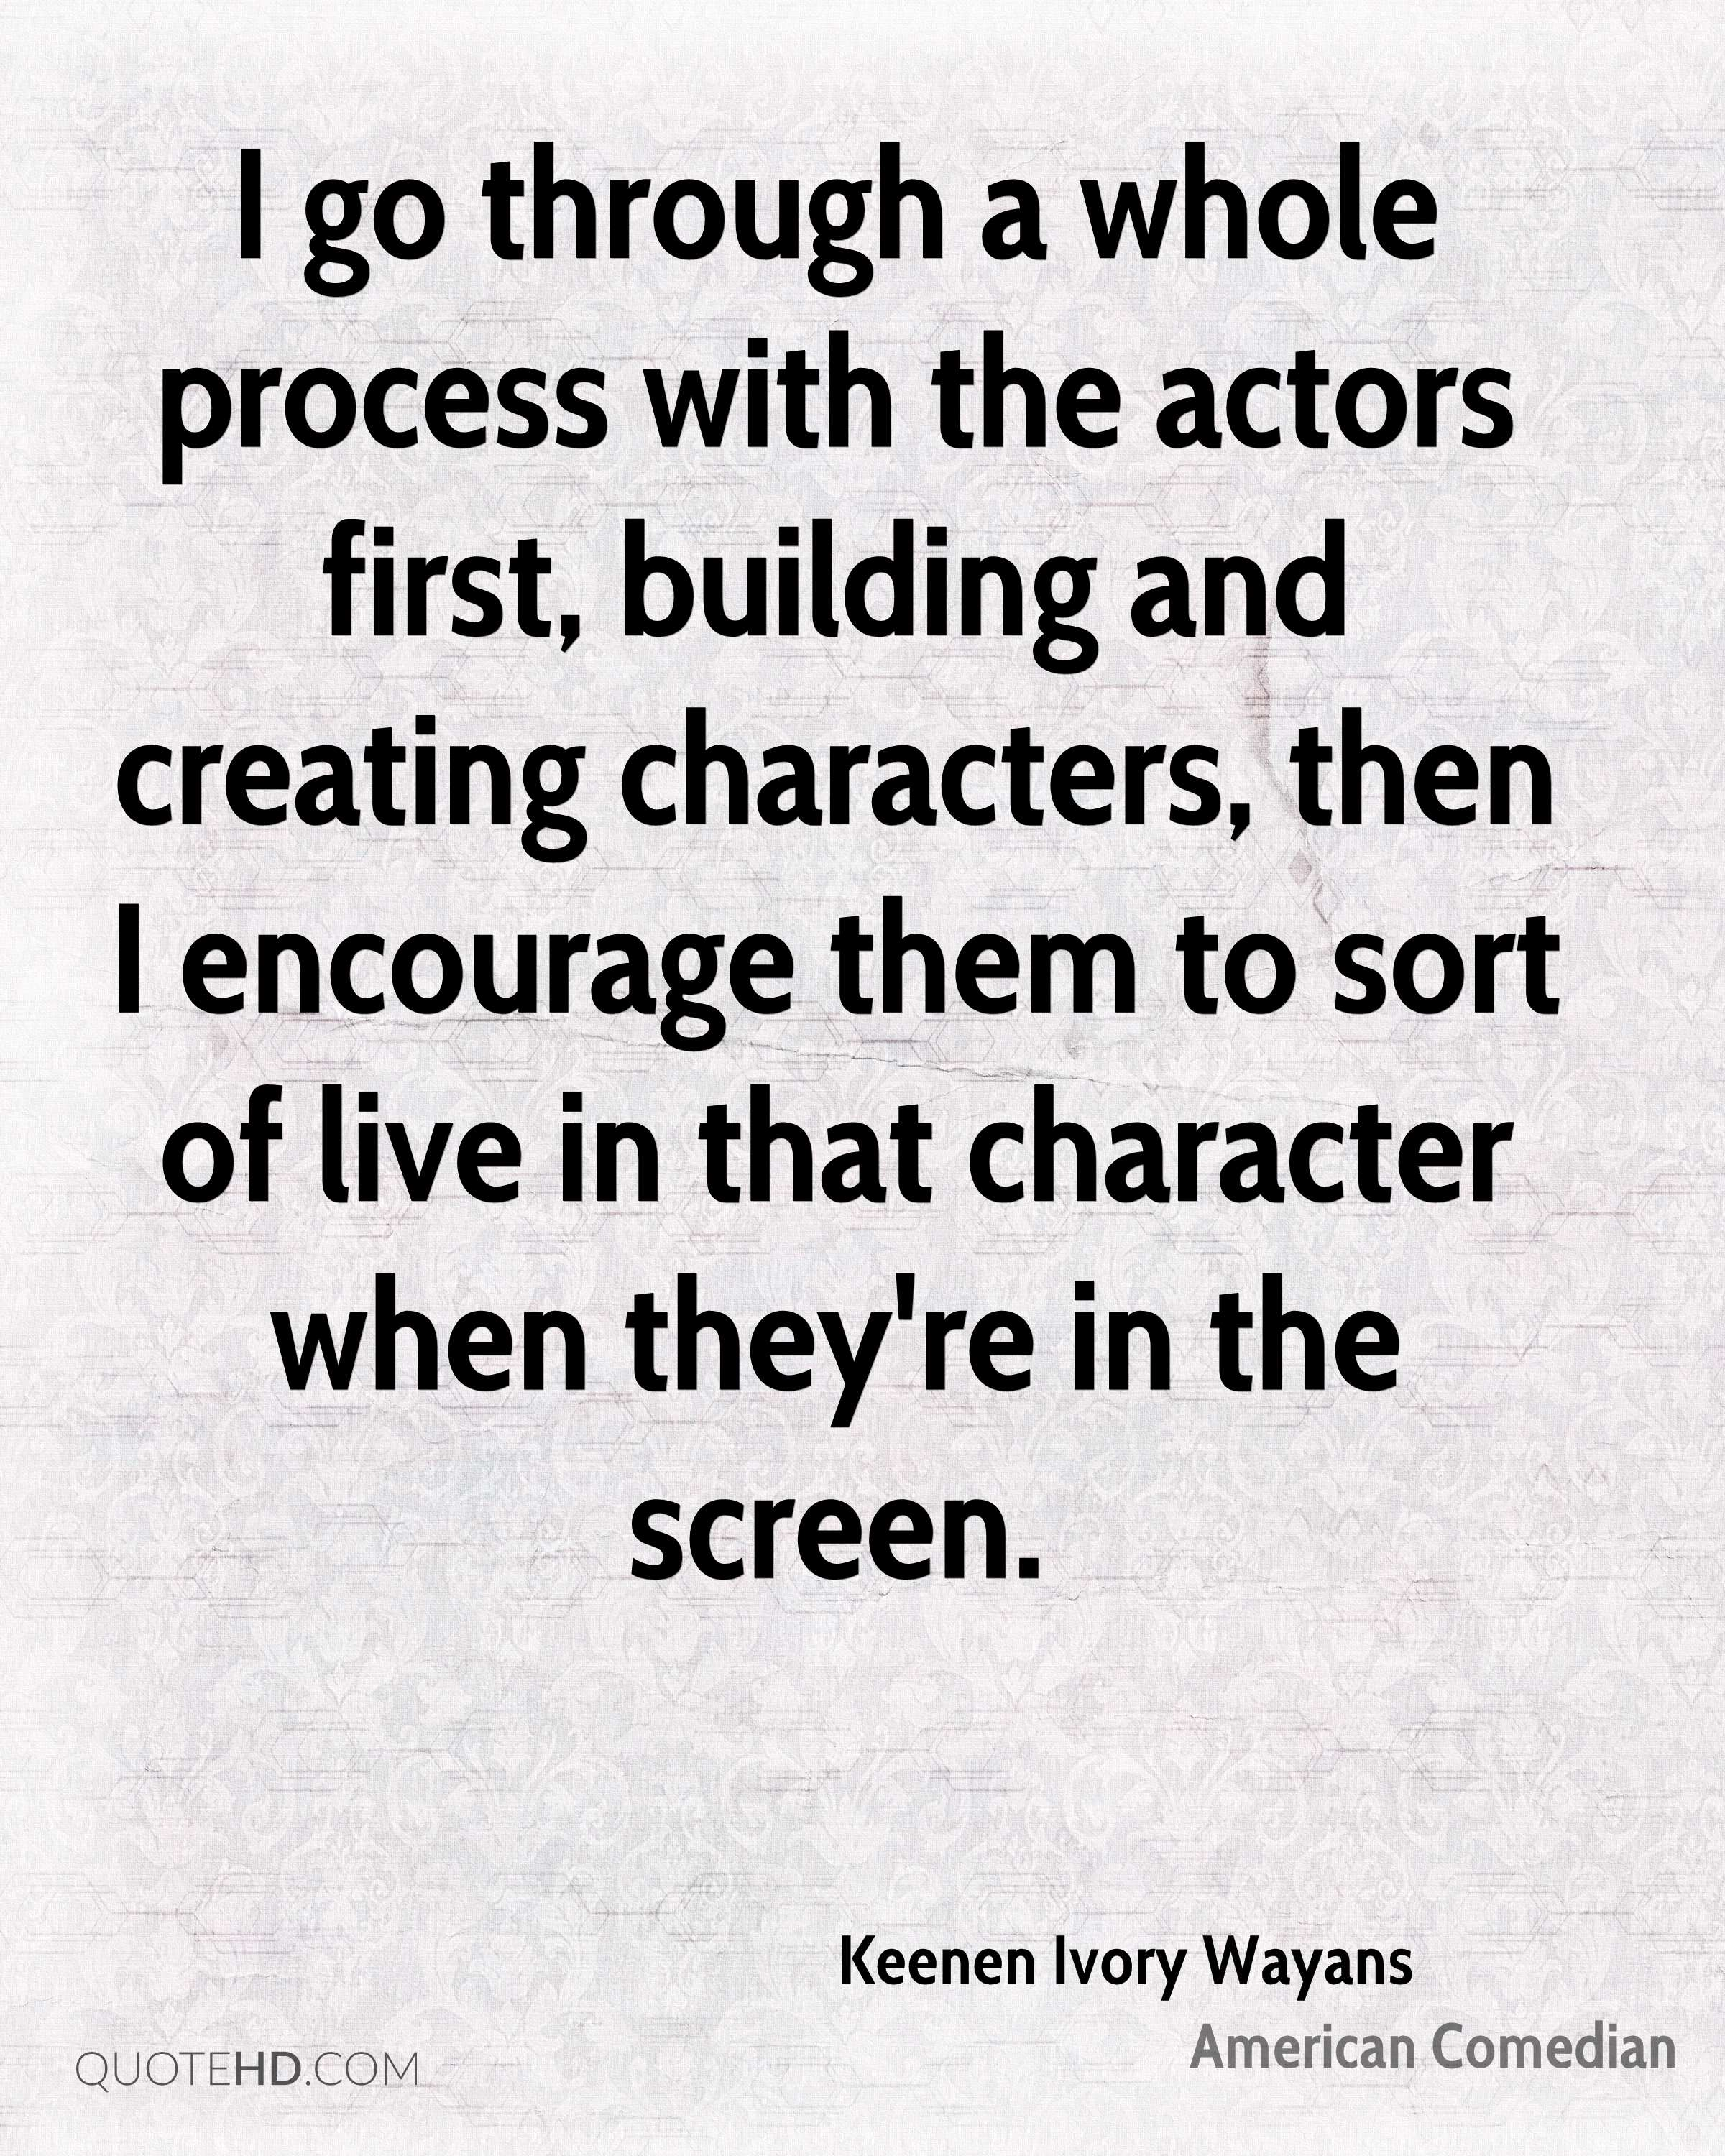 I go through a whole process with the actors first, building and creating characters, then I encourage them to sort of live in that character when they're in the screen.